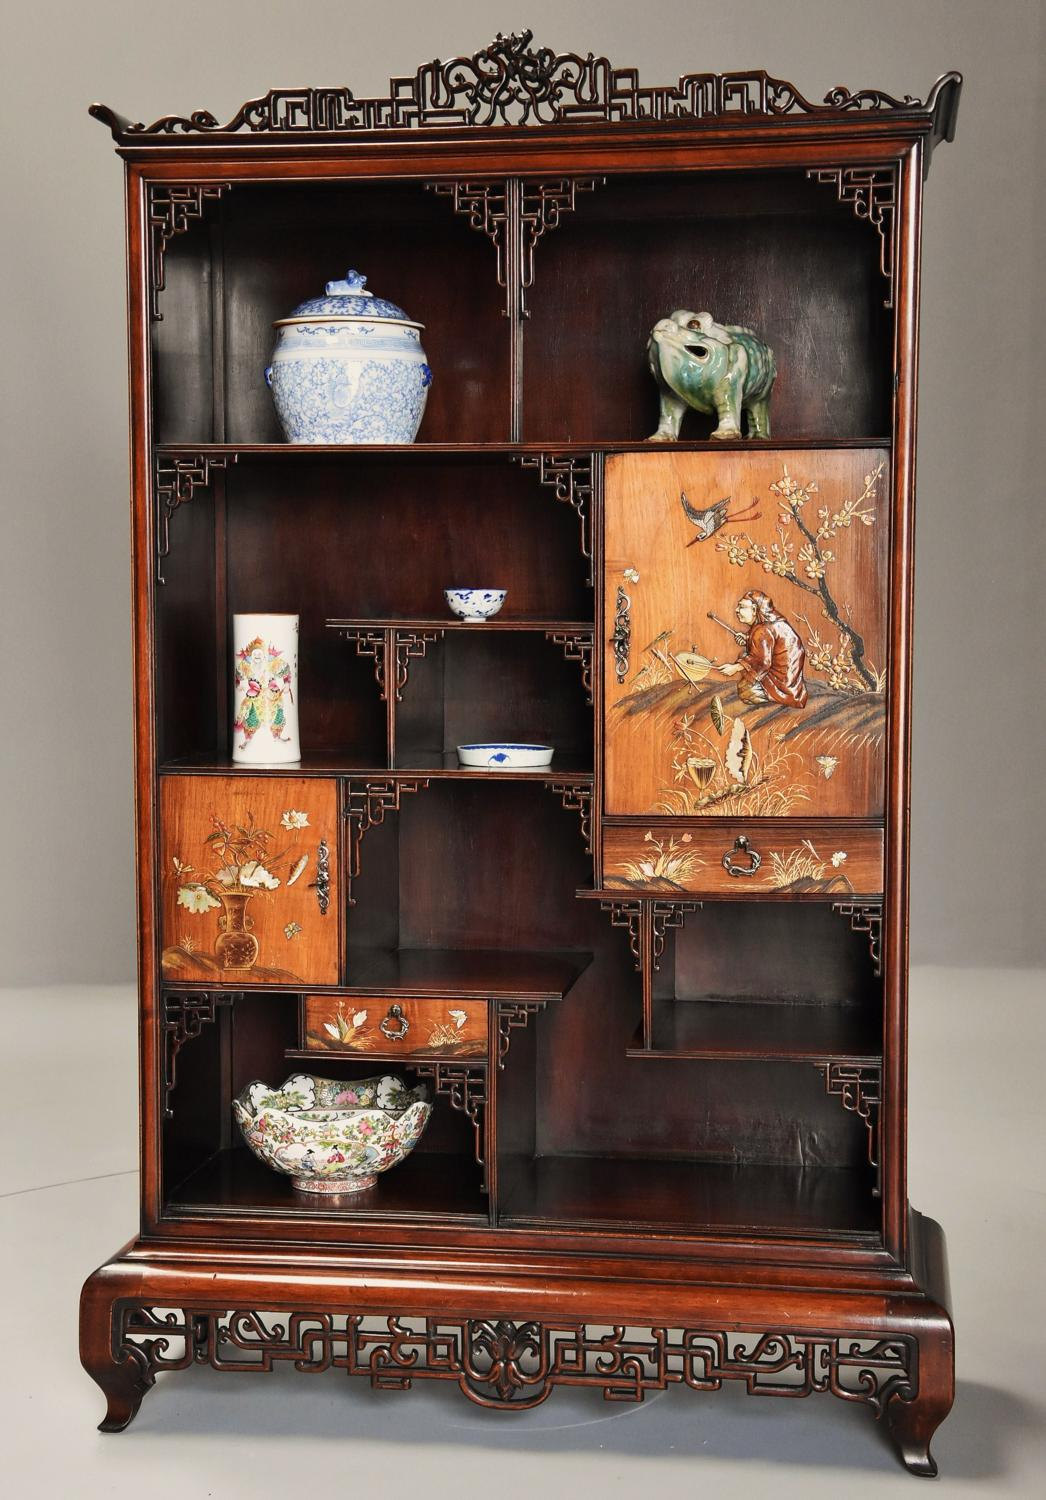 Exquisite French 19thc Japanese style display cabinet